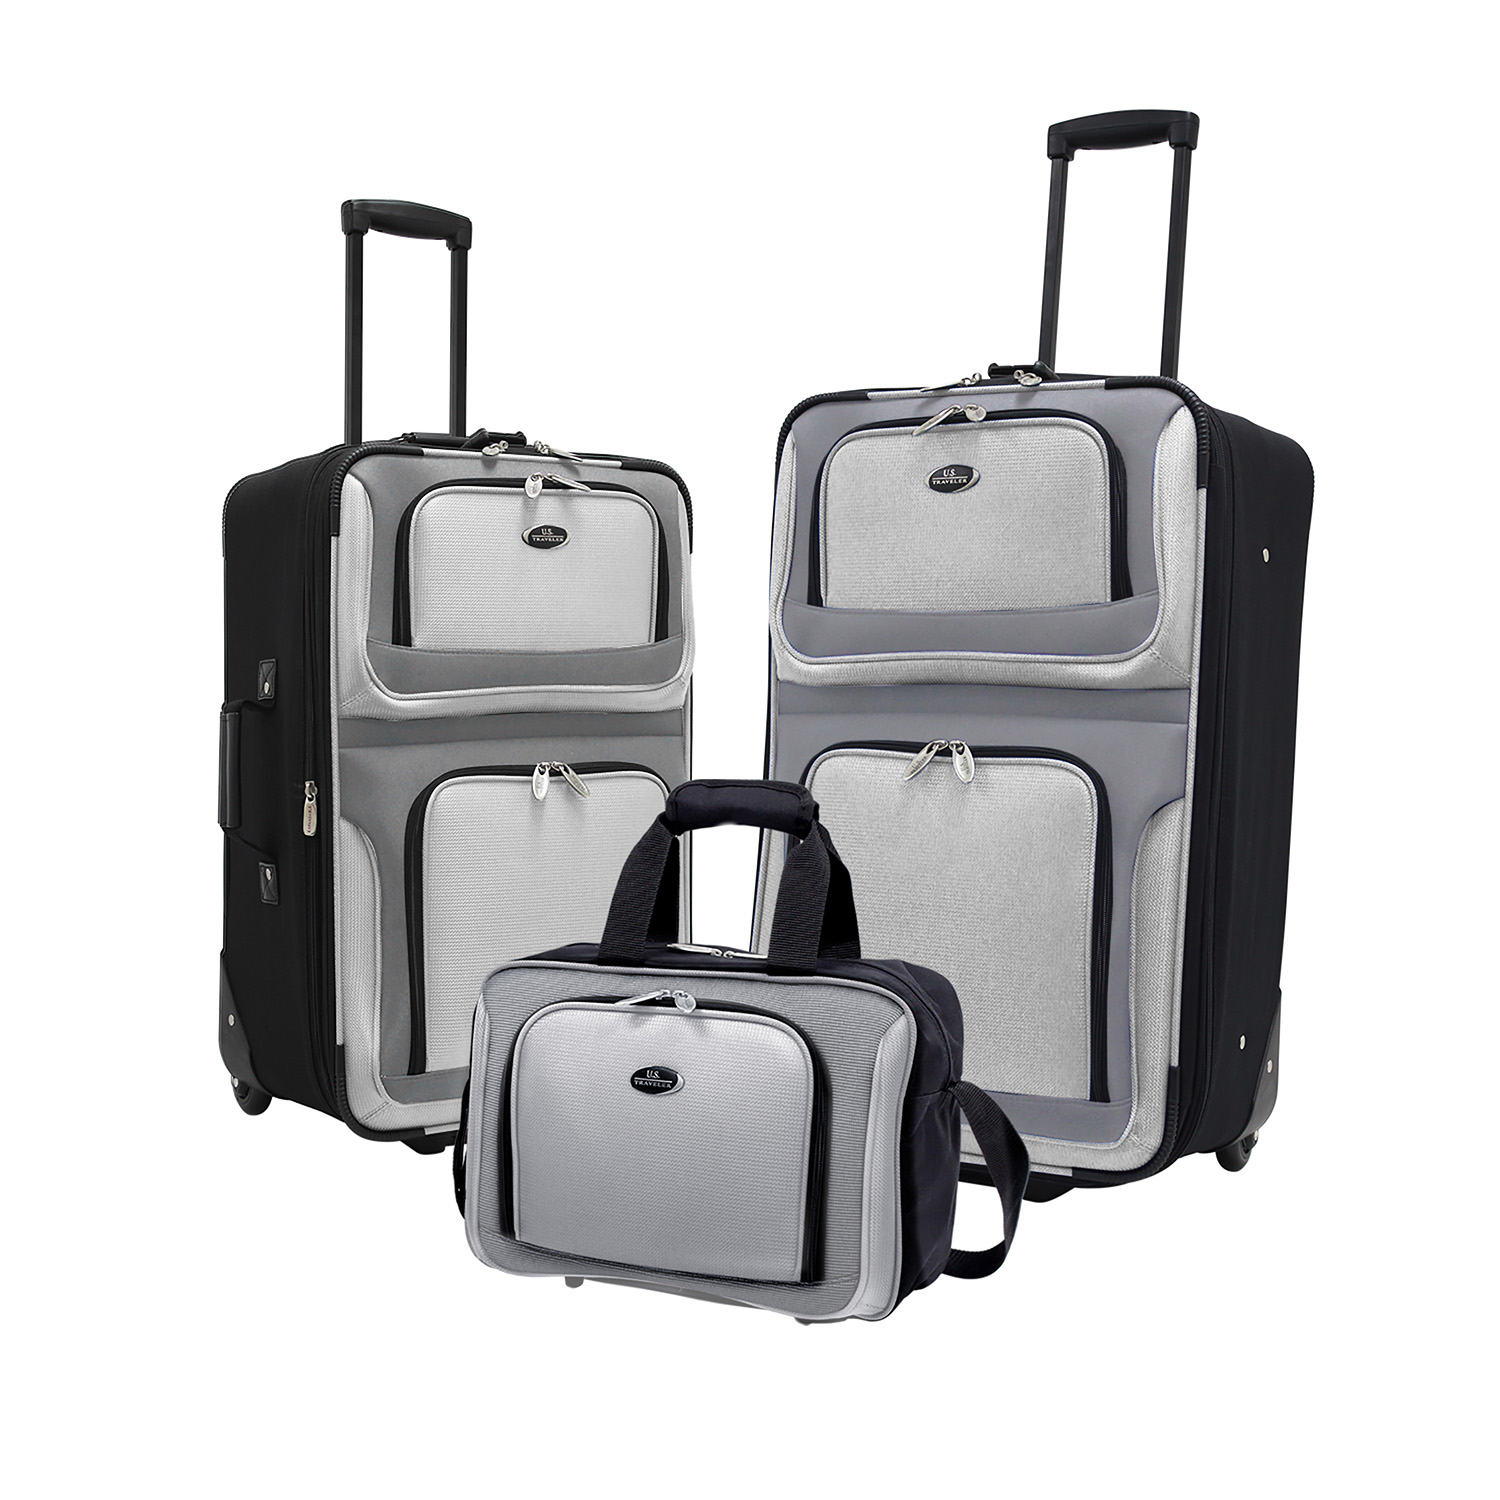 U.S. Traveler New Yorker 3-Piece Luggage Set in Gray